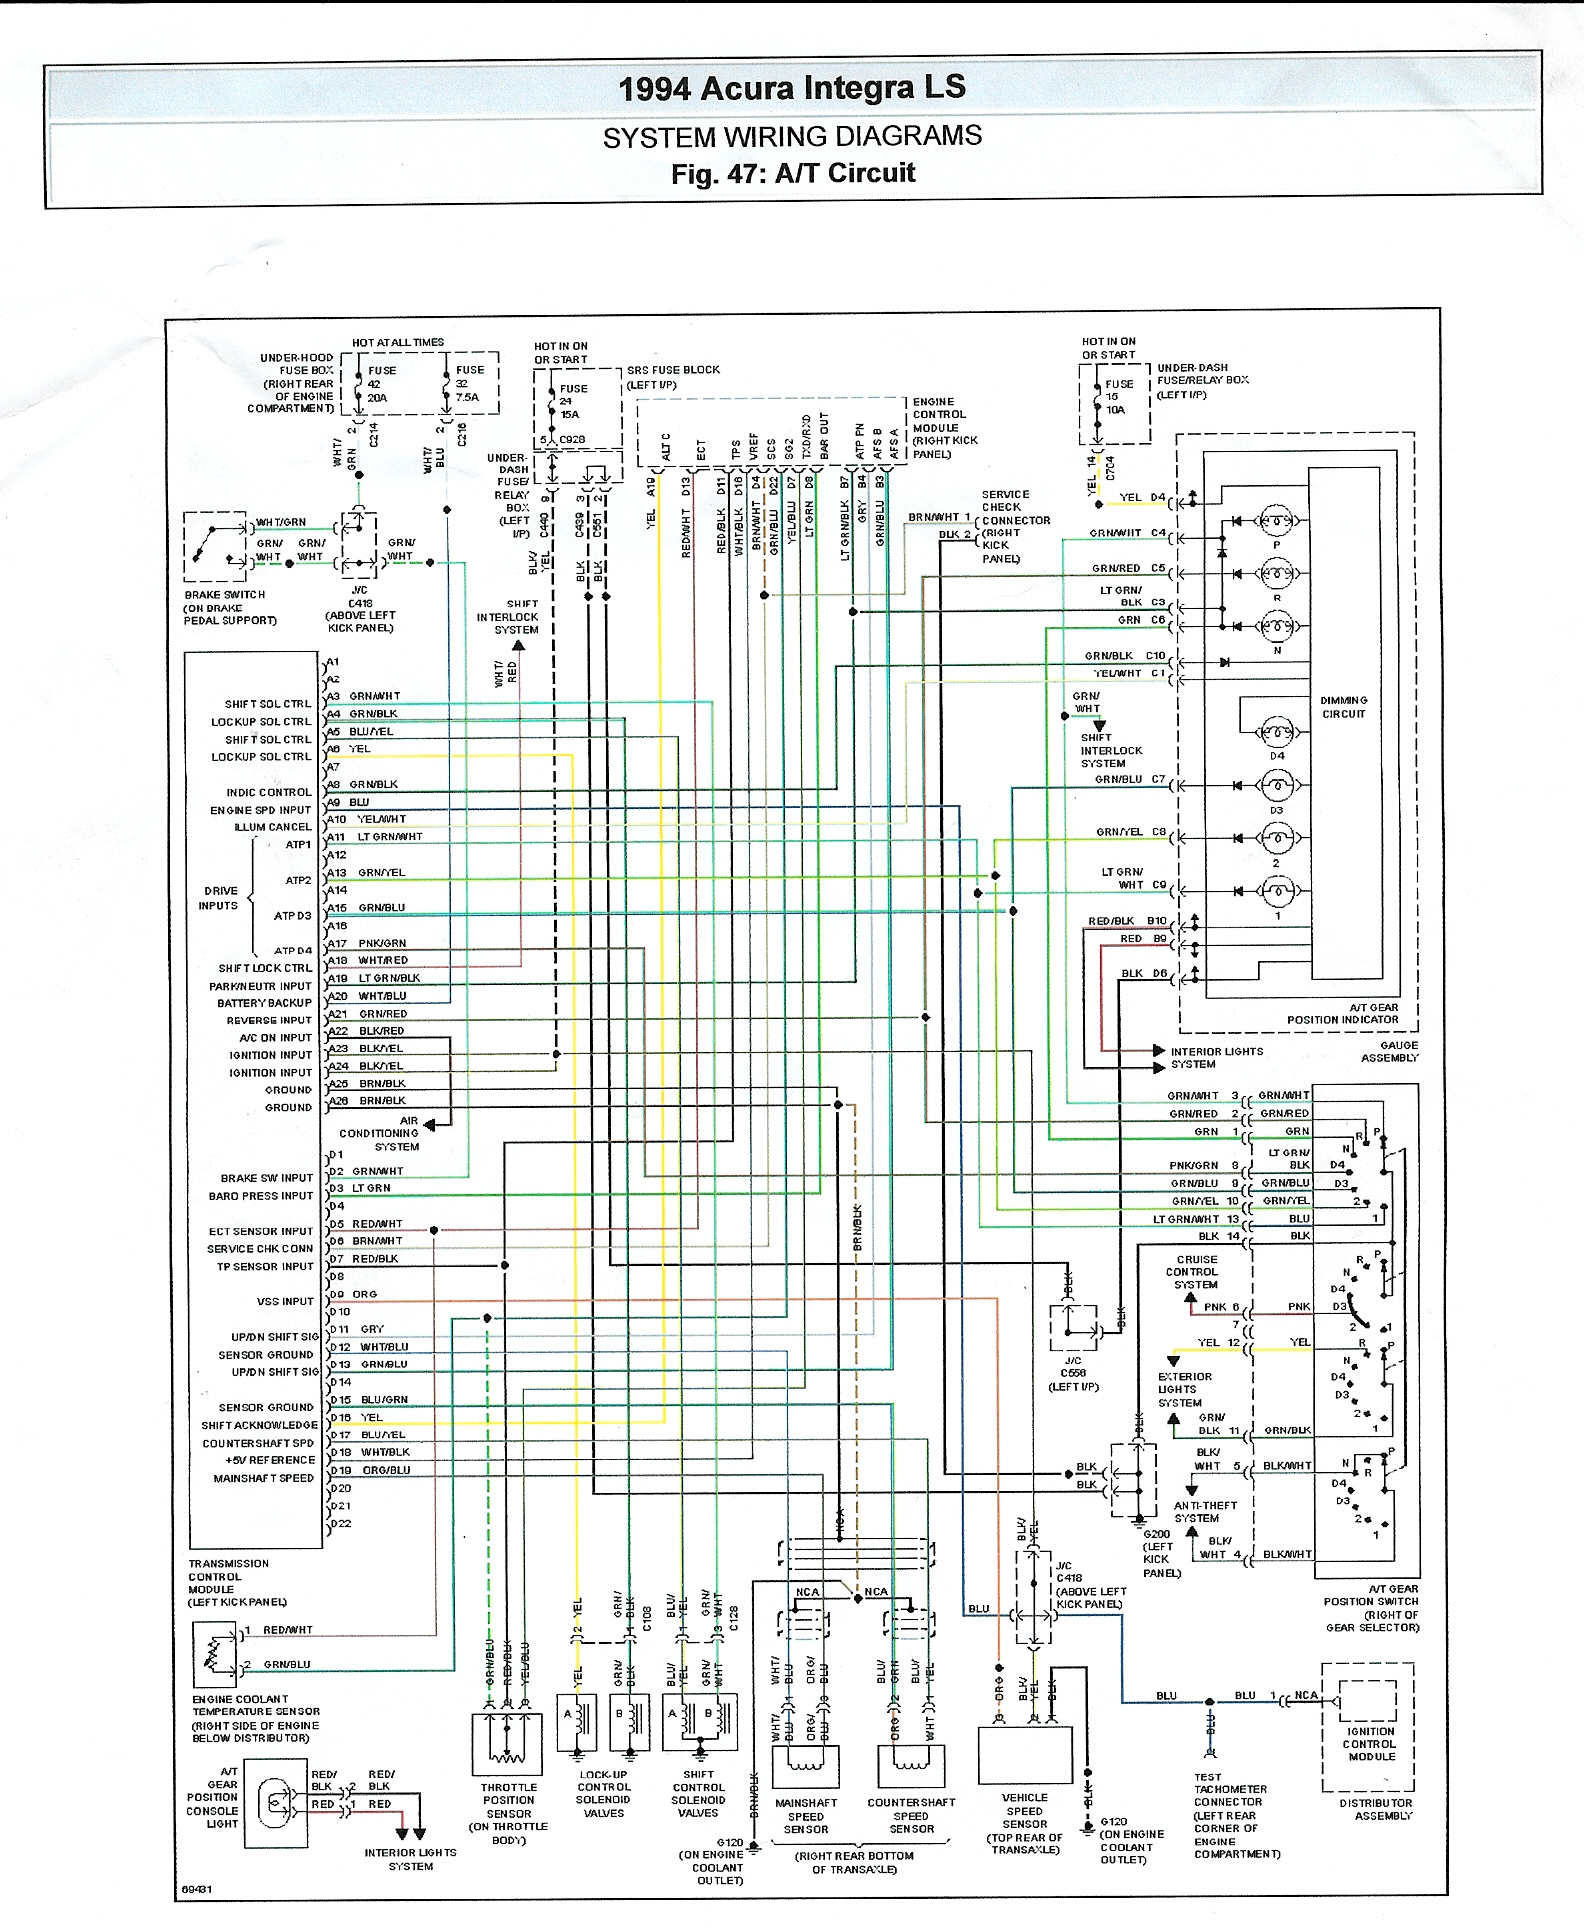 1990 honda accord alternator wiring diagram of window type air conditioner 10 civic headlight get free image about